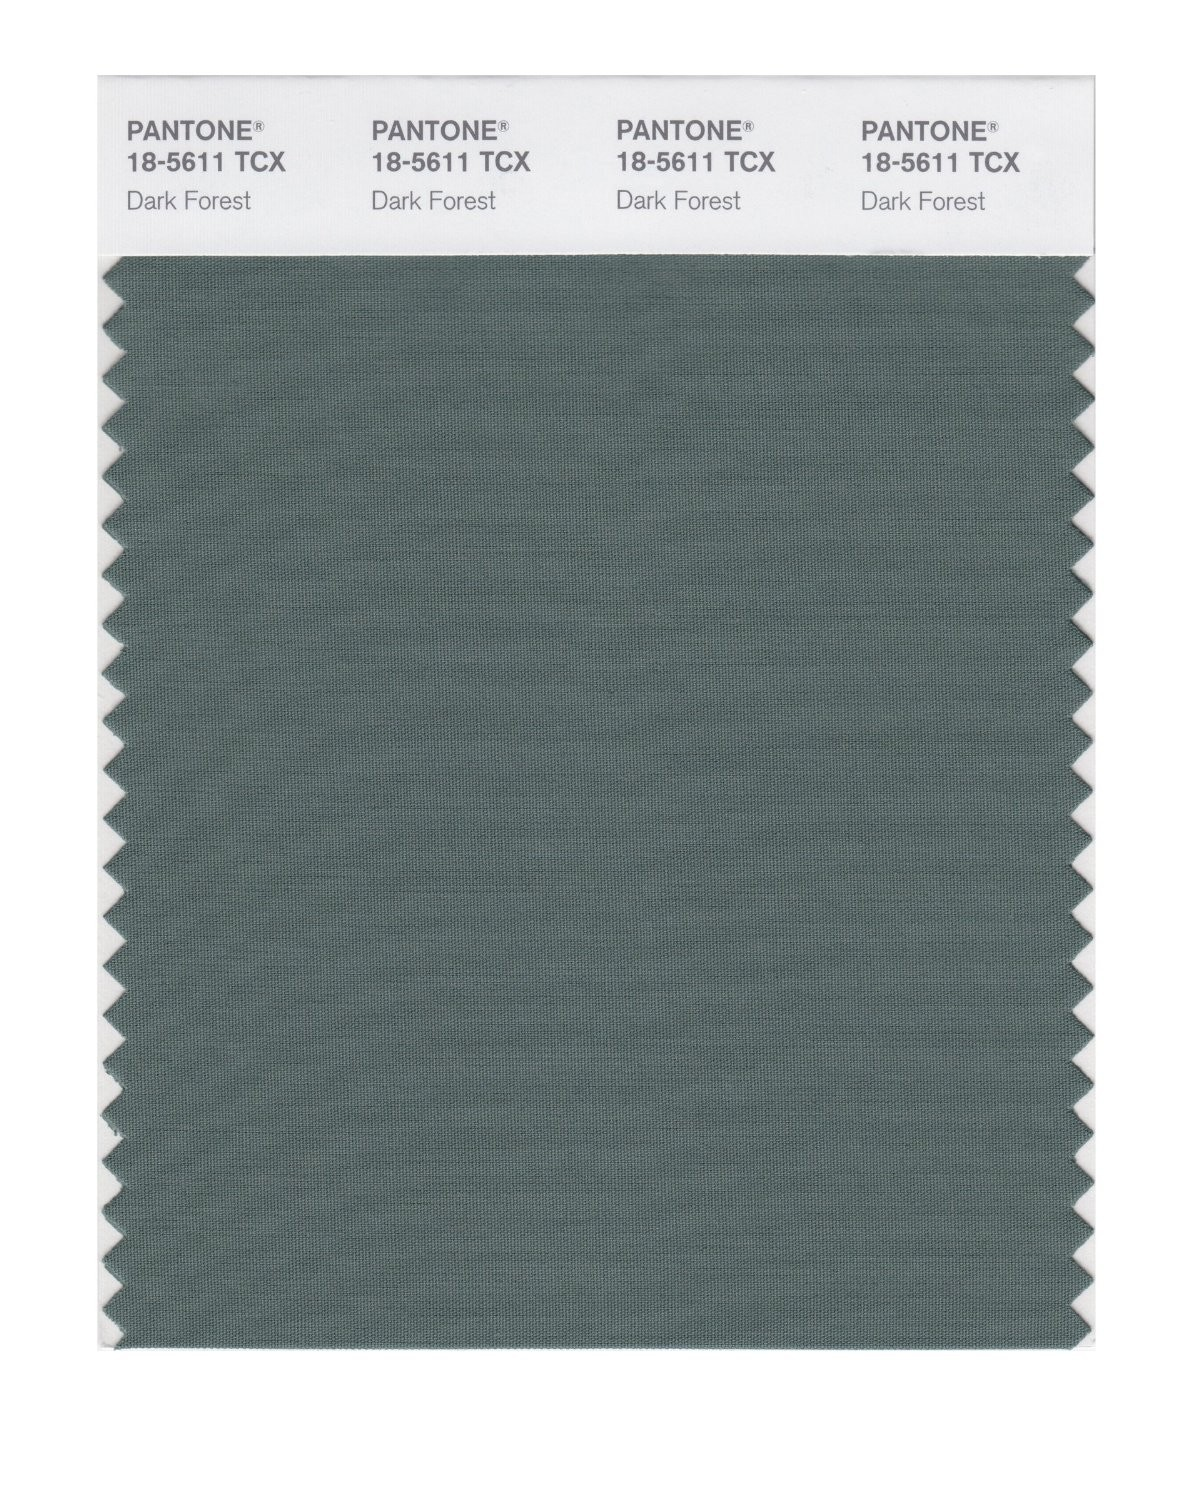 Pantone 18-5611 TCX Swatch Card Dark Forest